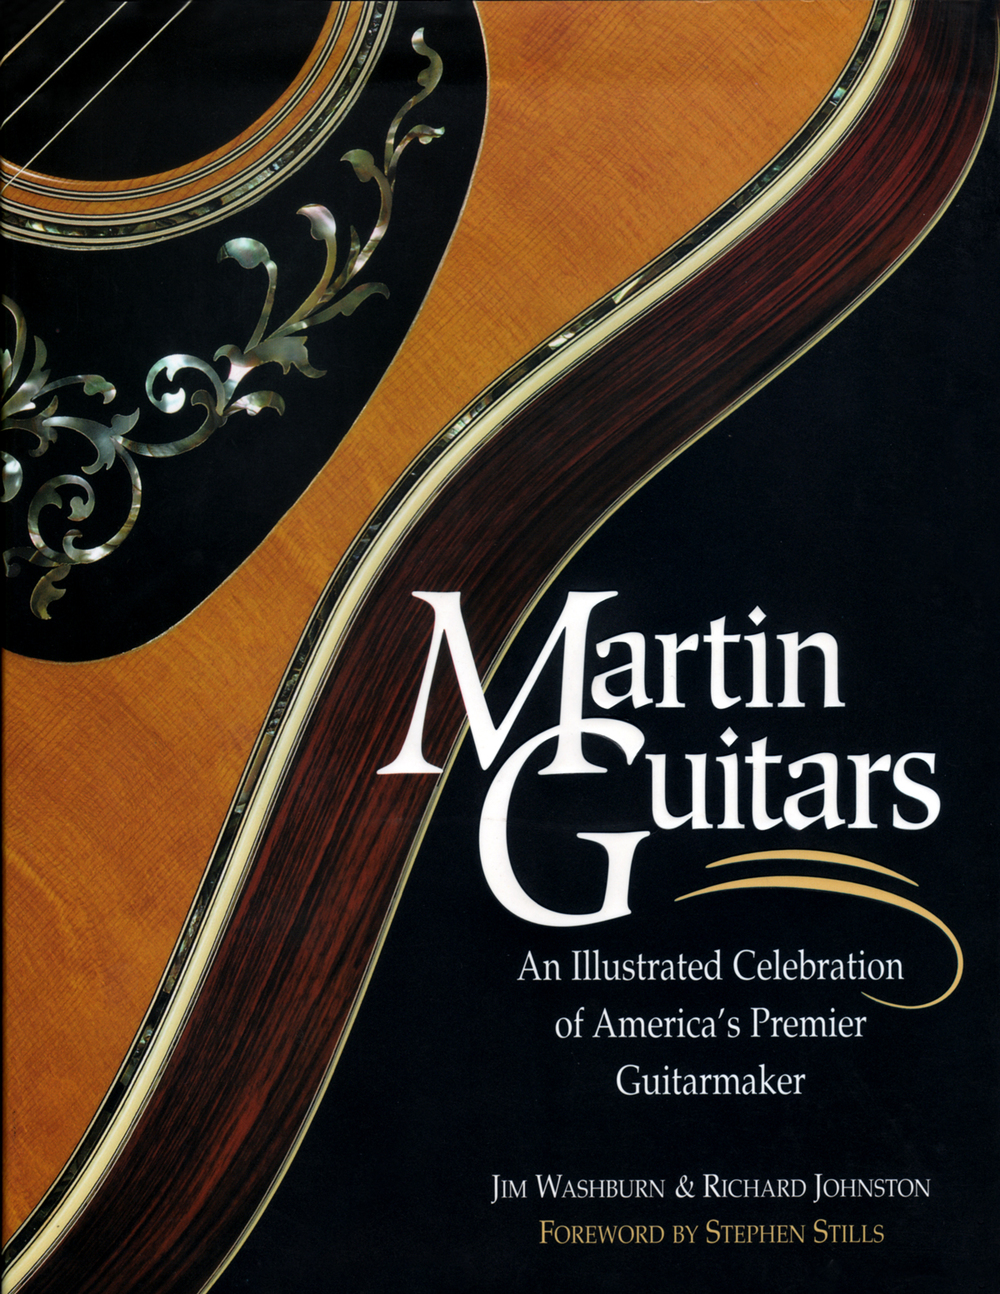 Martin Guitars: An Illustrated Celebration of America's Premier Guitar Maker